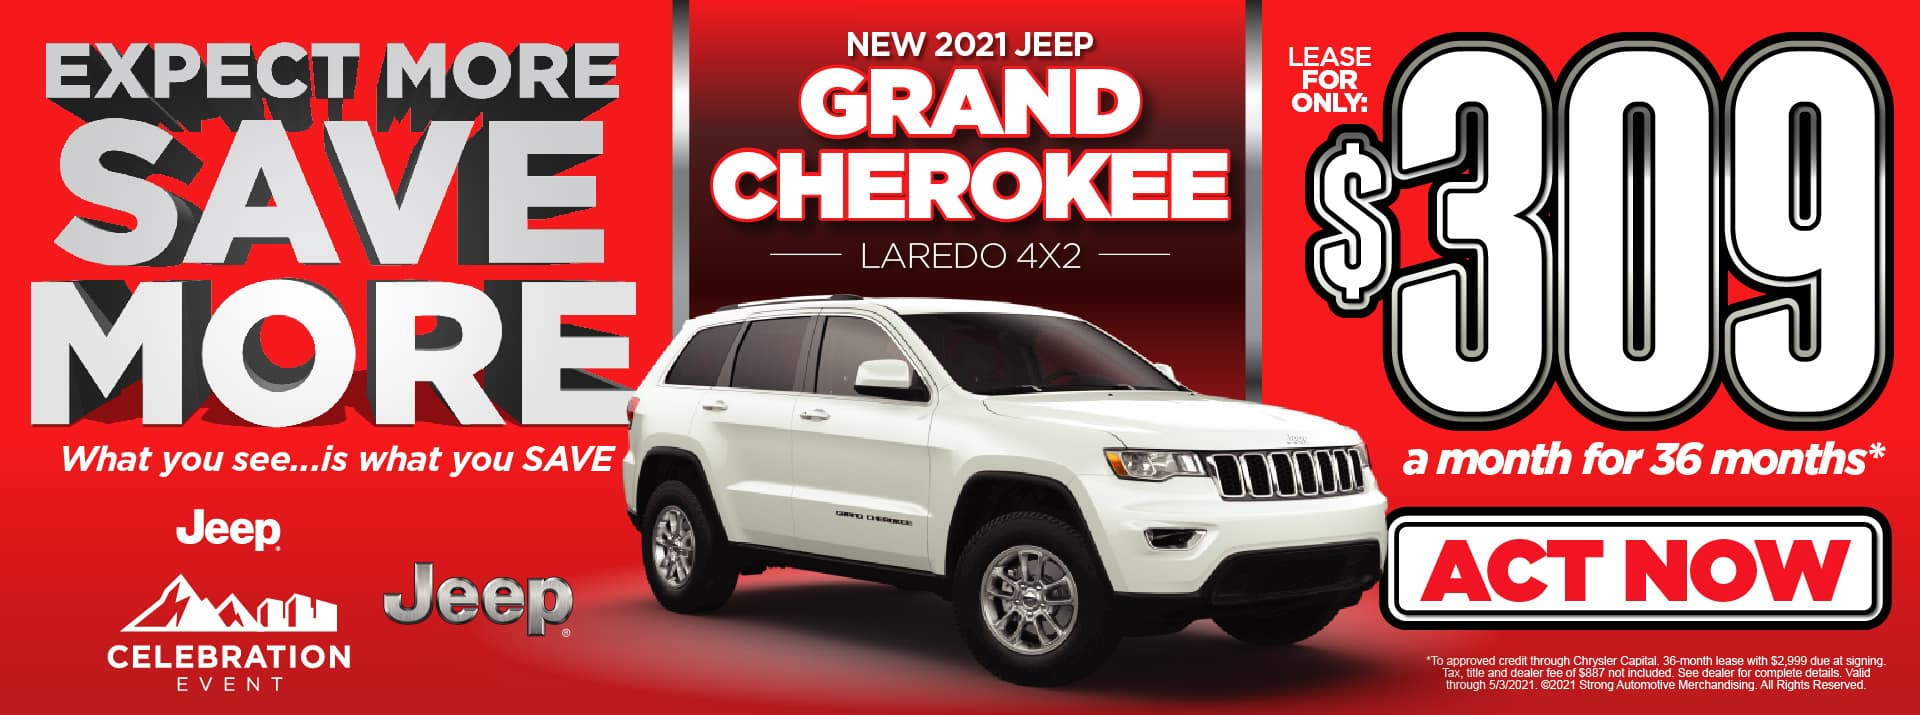 NEW 2021 JEEP GRAND CHEROKEE LEASE FOR $309/MO* ACT NOW